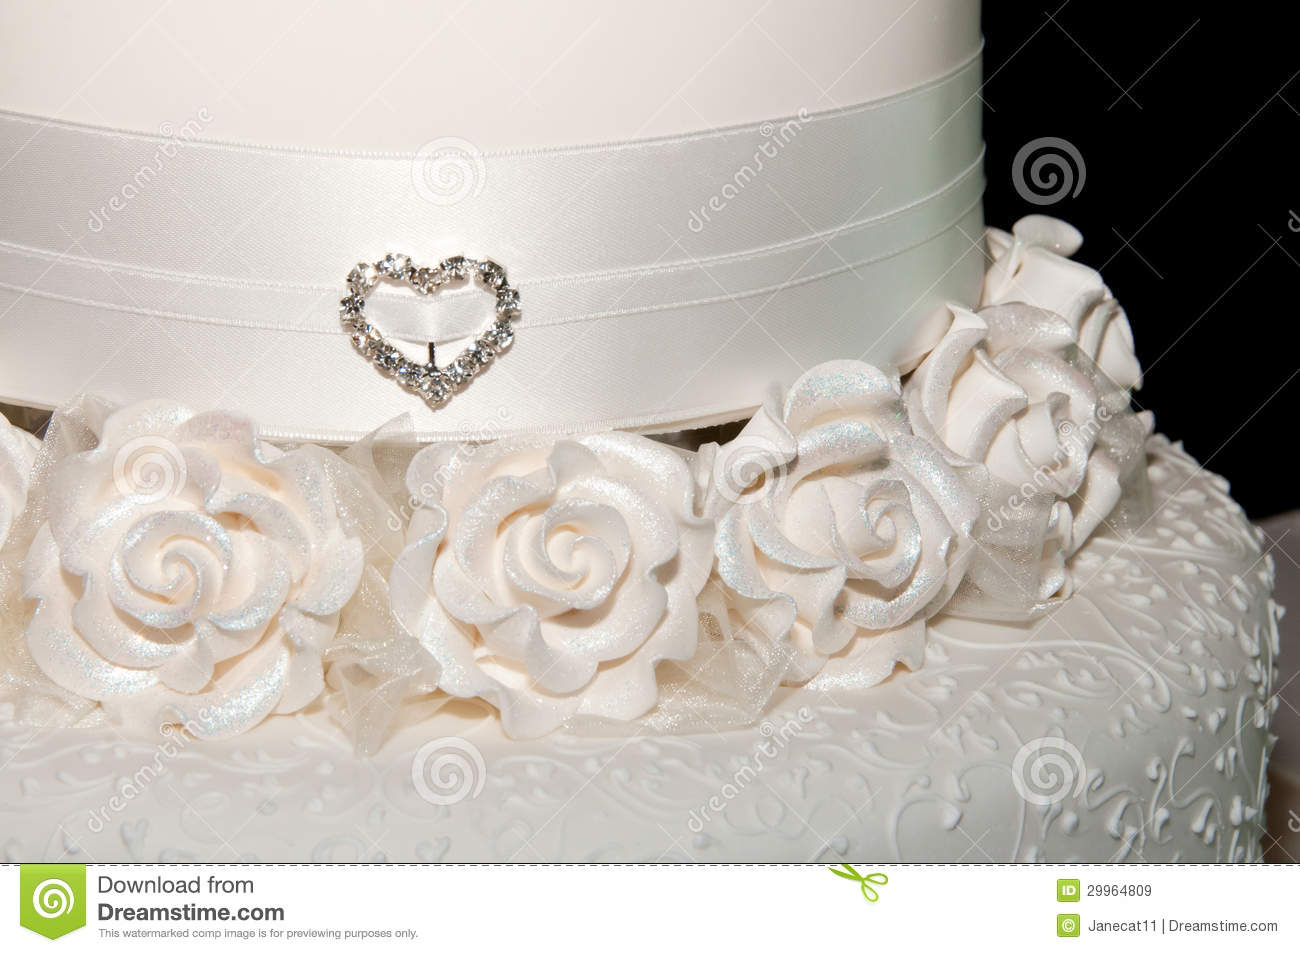 wedding cake fondant or royal icing white wedding cake up royalty free stock images 22691